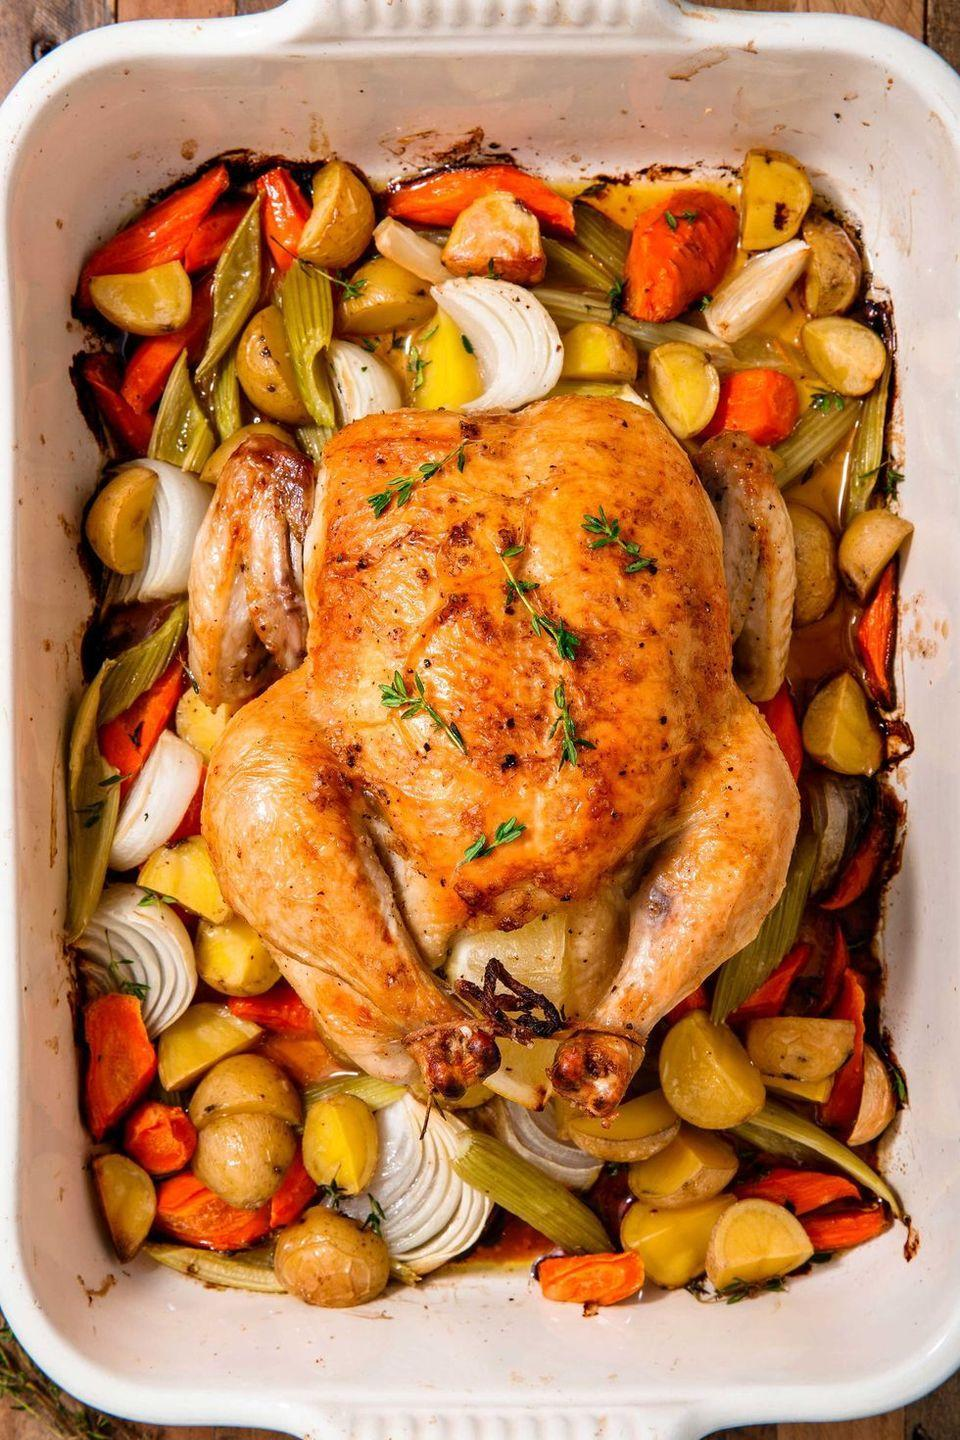 "<p>Intimidated by a whole chicken? Don't be! It's surprisingly easy to make, and there's nothing better than roast chicken leftovers. Great on salads and in sandwiches.</p><p>Get the <a href=""https://www.delish.com/uk/cooking/recipes/a28926109/classic-roast-chicken-recipe/"" rel=""nofollow noopener"" target=""_blank"" data-ylk=""slk:Classic Roast Chicken"" class=""link rapid-noclick-resp"">Classic Roast Chicken</a> recipe.</p>"